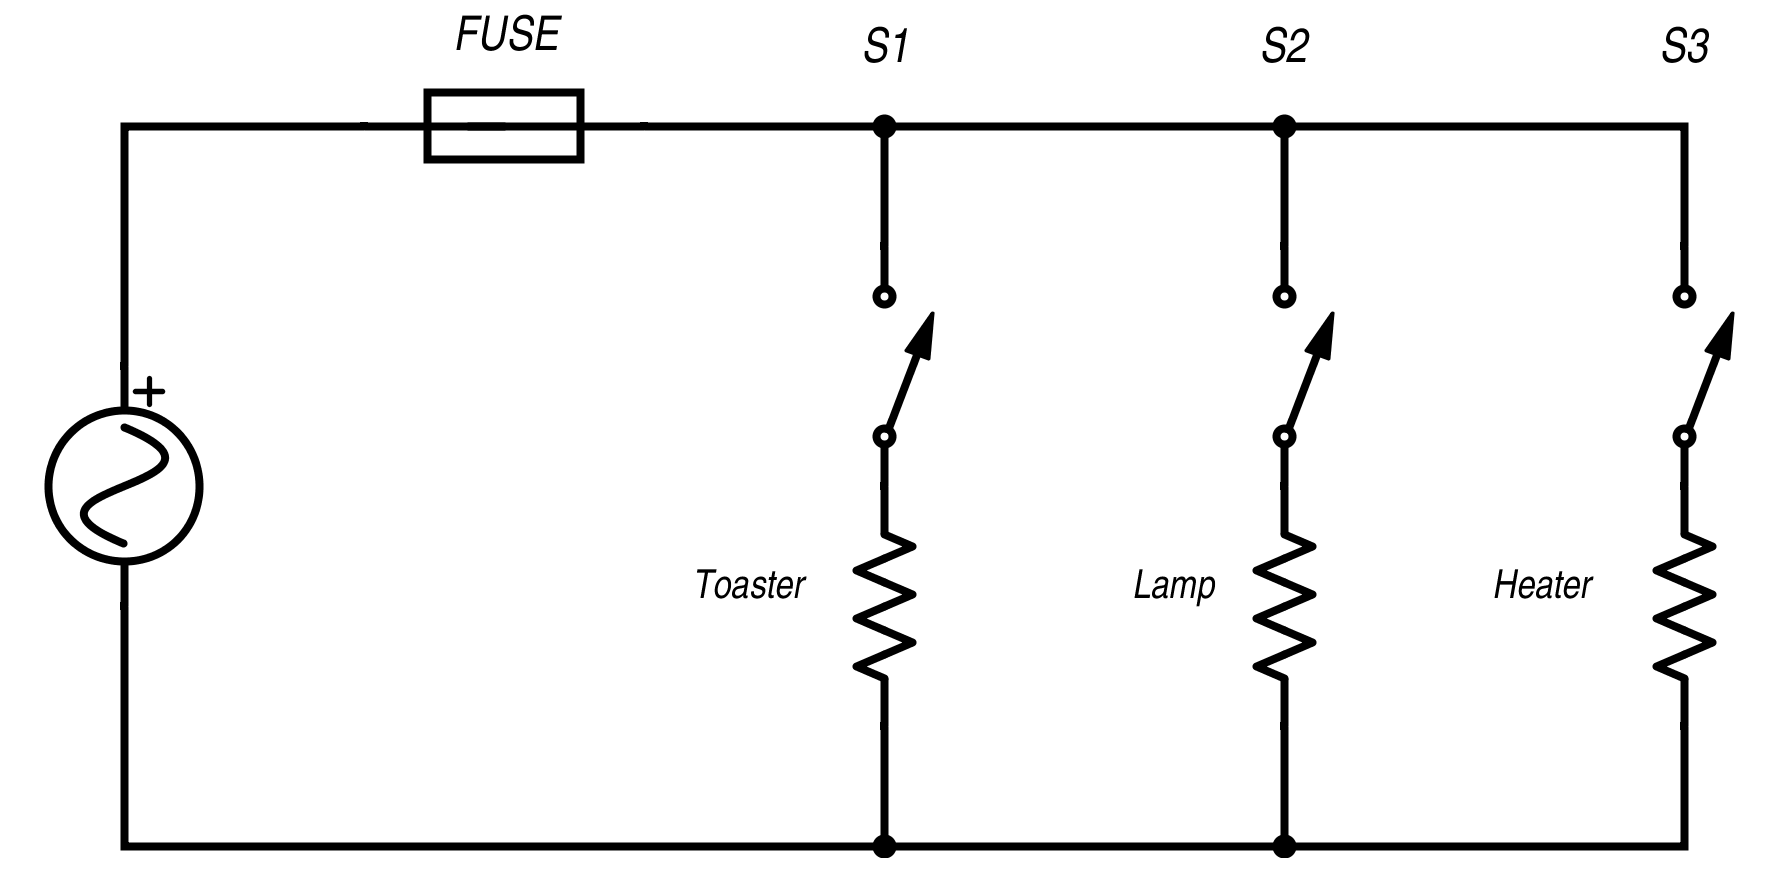 Fuse In A Parallel Circuit Wiring Diagram For Professional Metaldetectorcircuitschematic Should Be Series Or With The Main Rh Quora Com Fuses Electrical